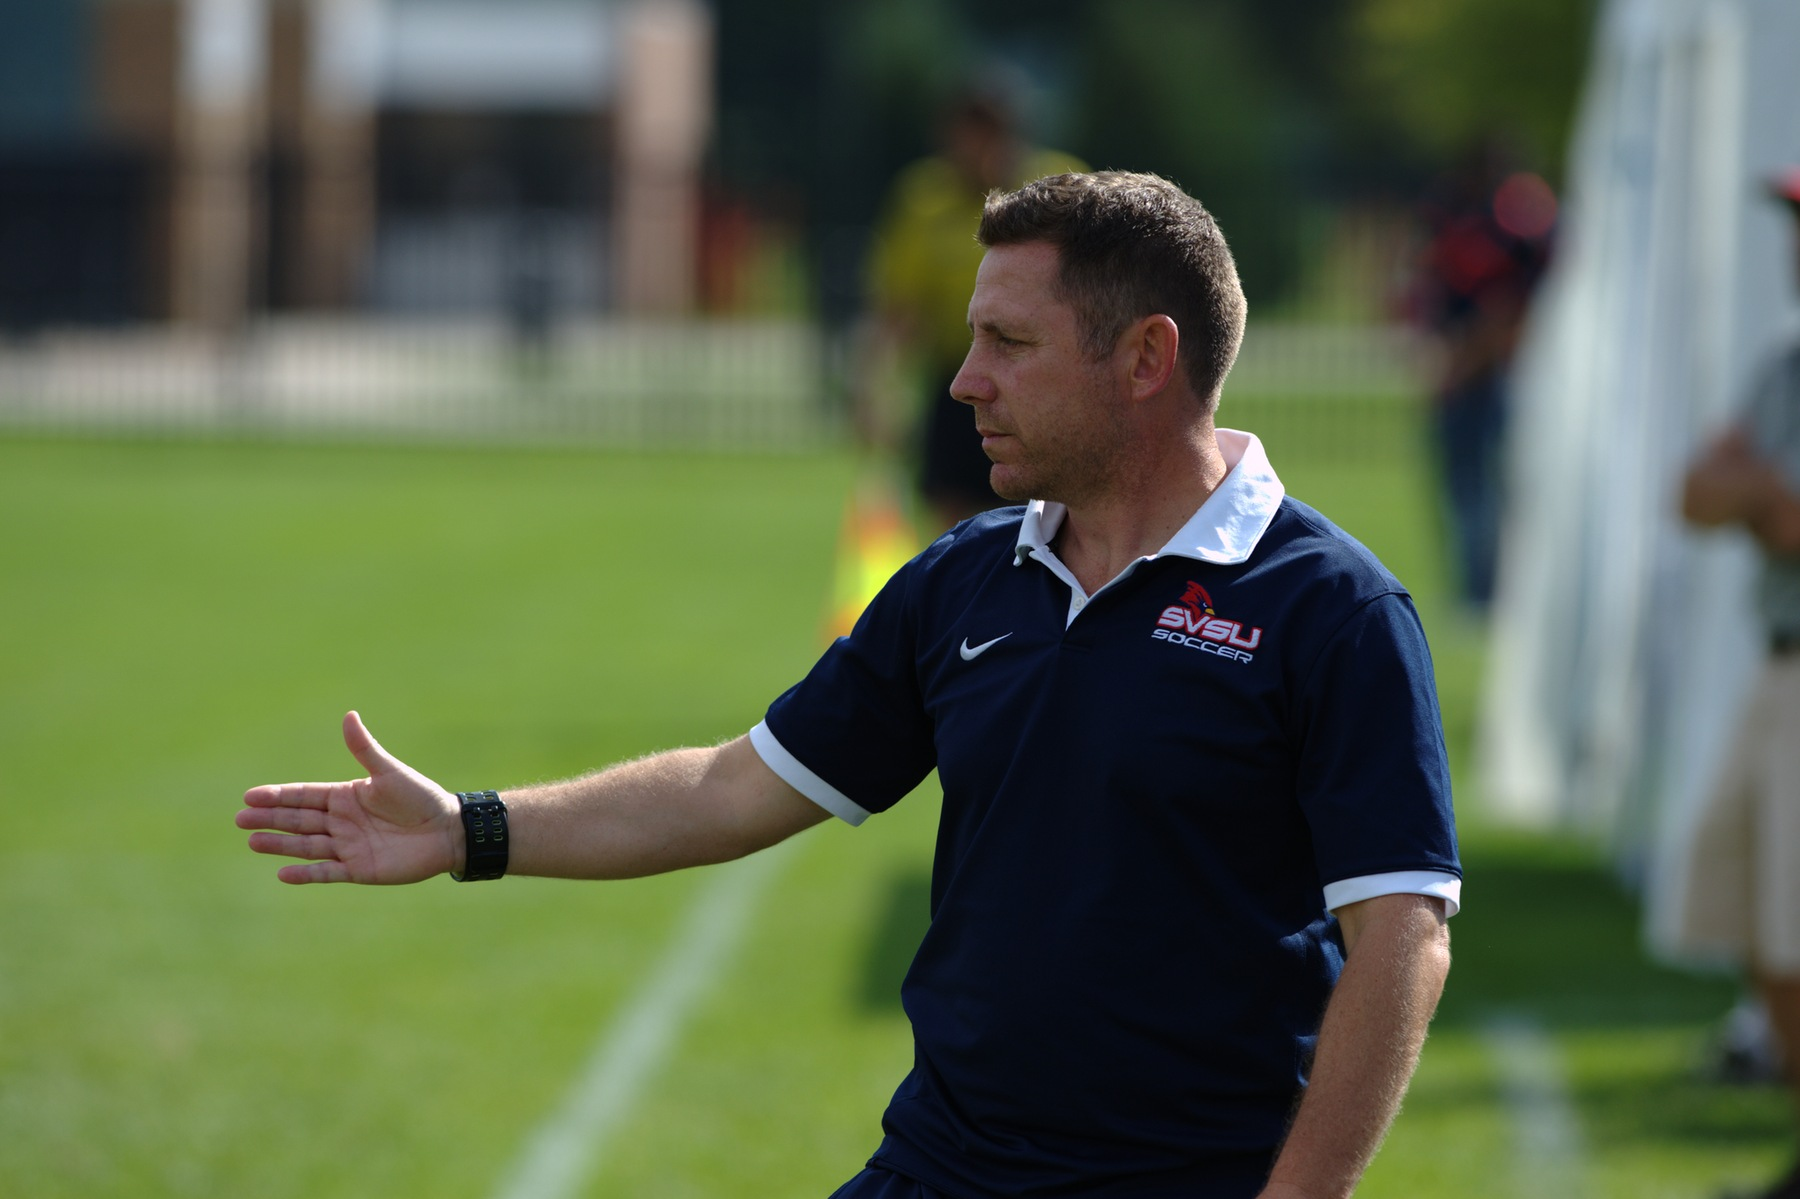 Men's Soccer head coach Andy Wagstaff stepping down from the program